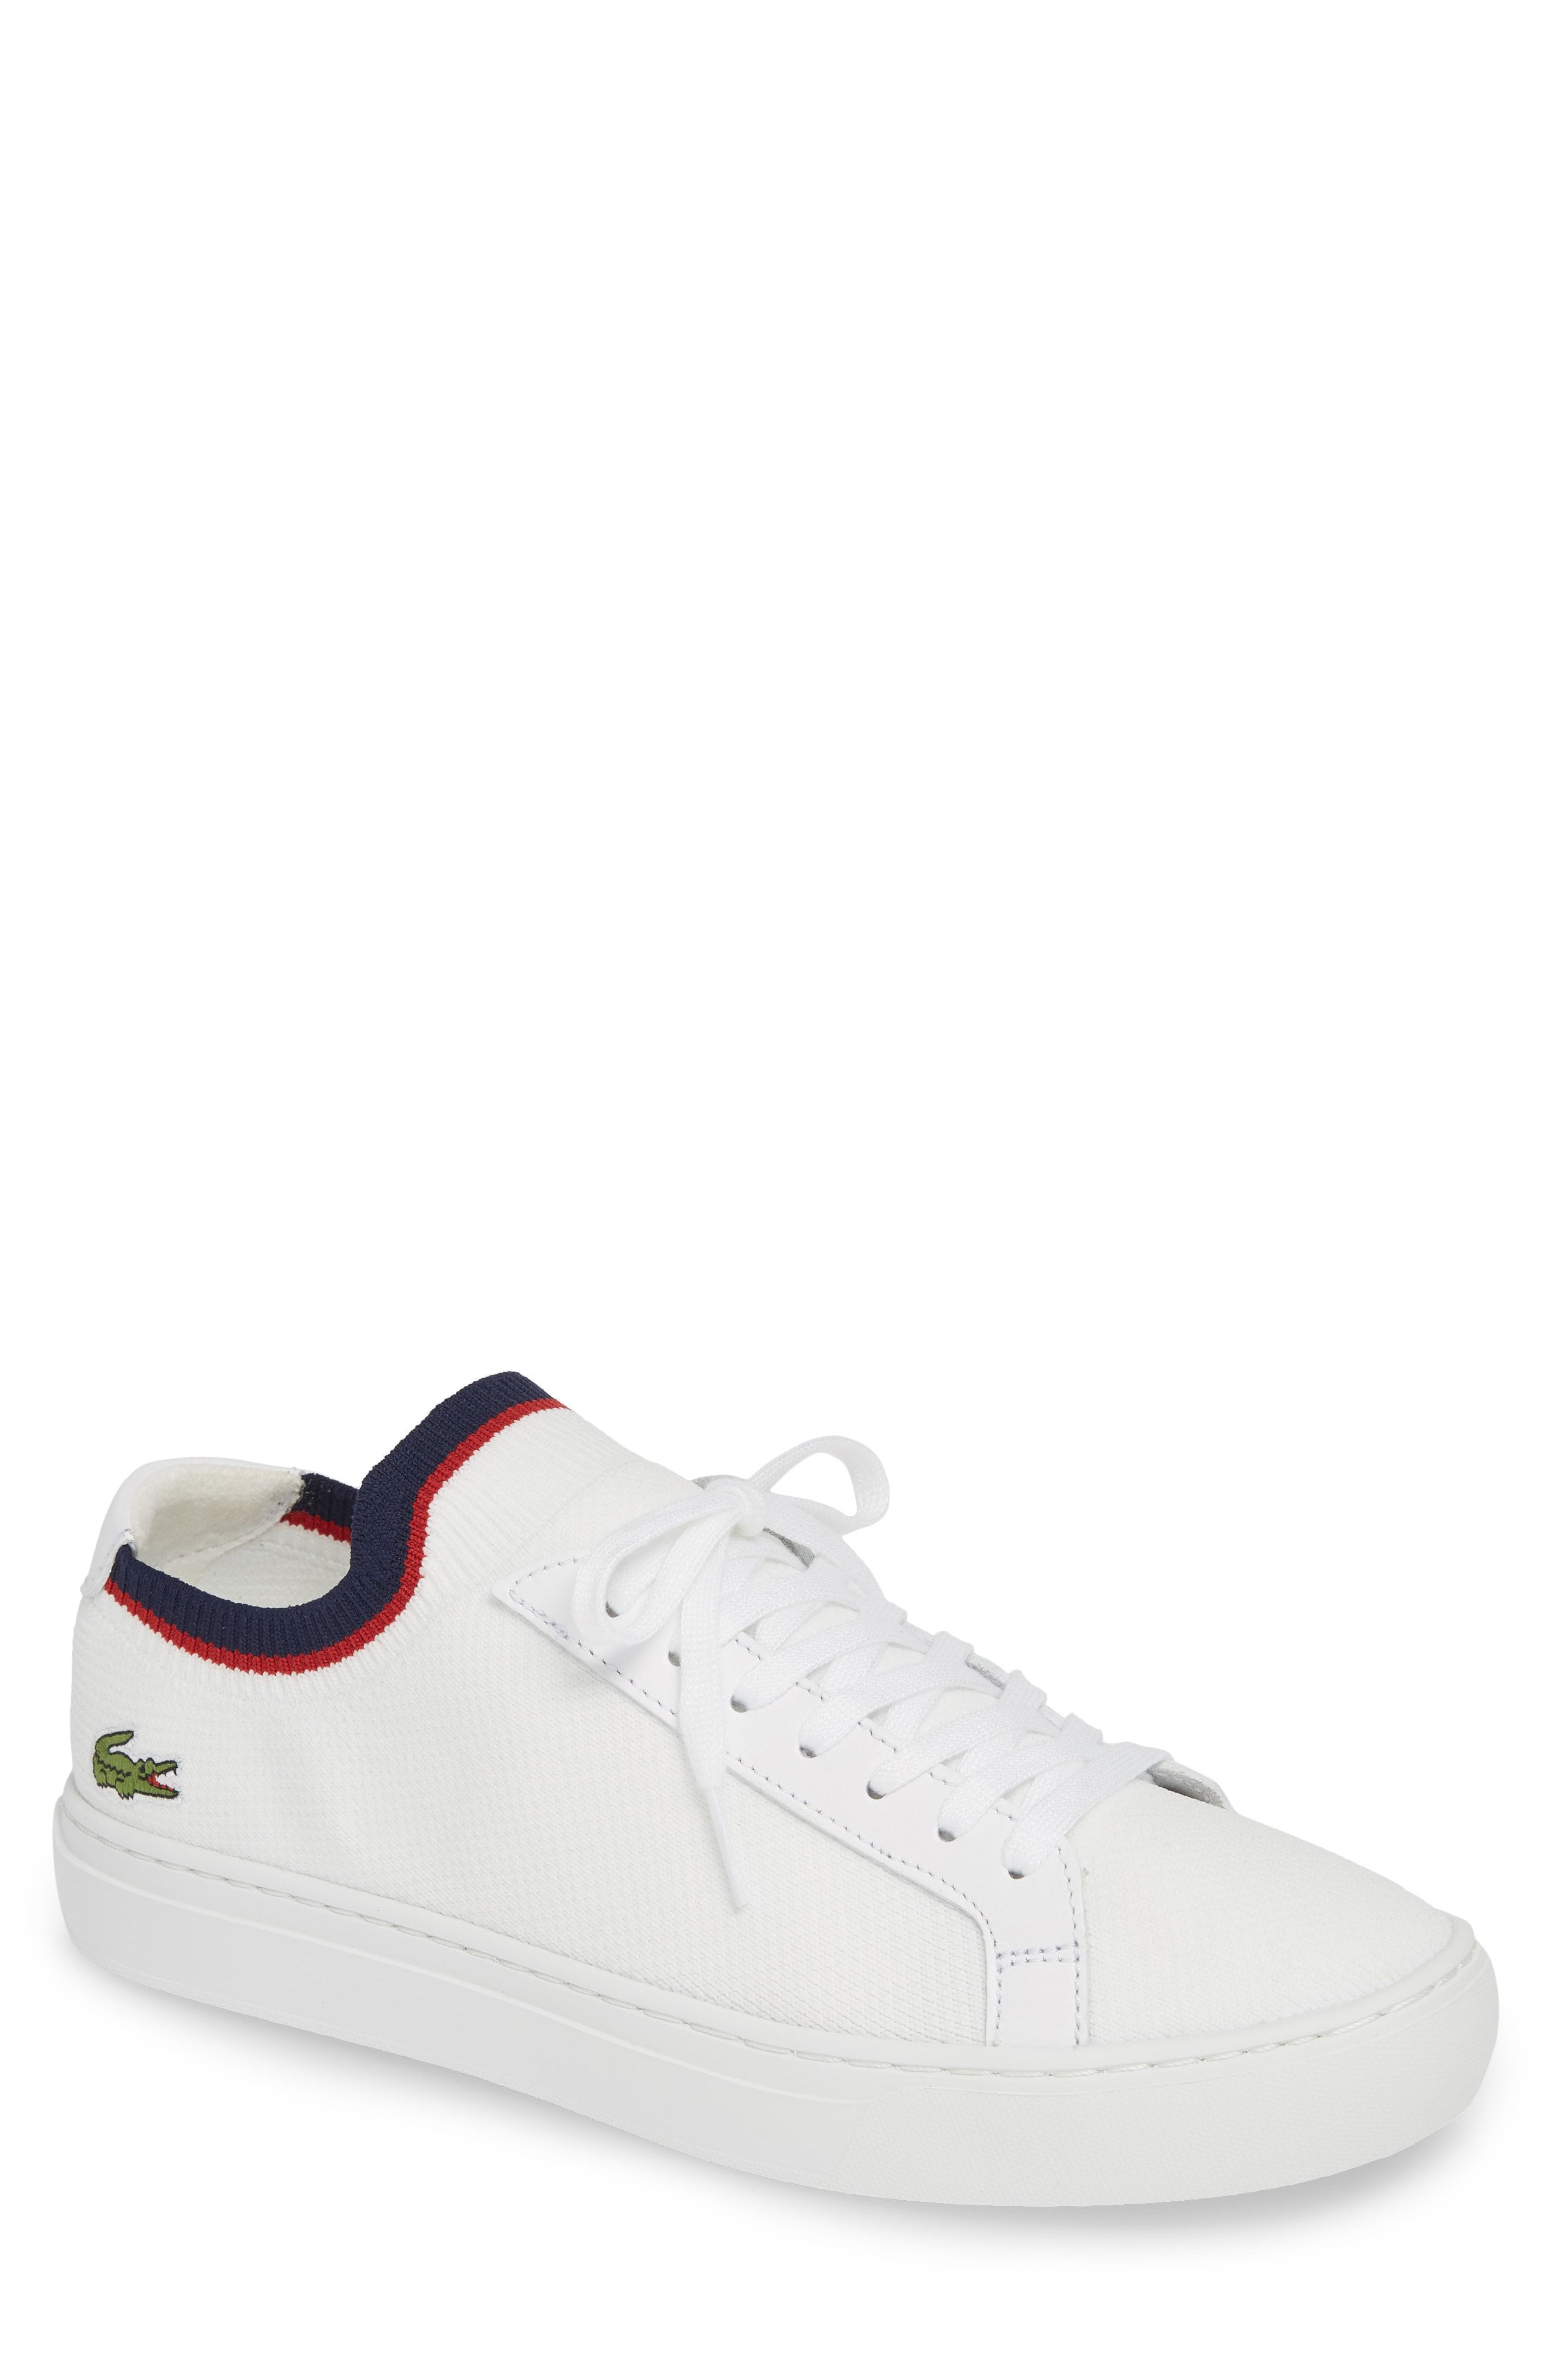 bf45fdc07b36 LACOSTE PIQUE KNIT SNEAKER.  lacoste  shoes